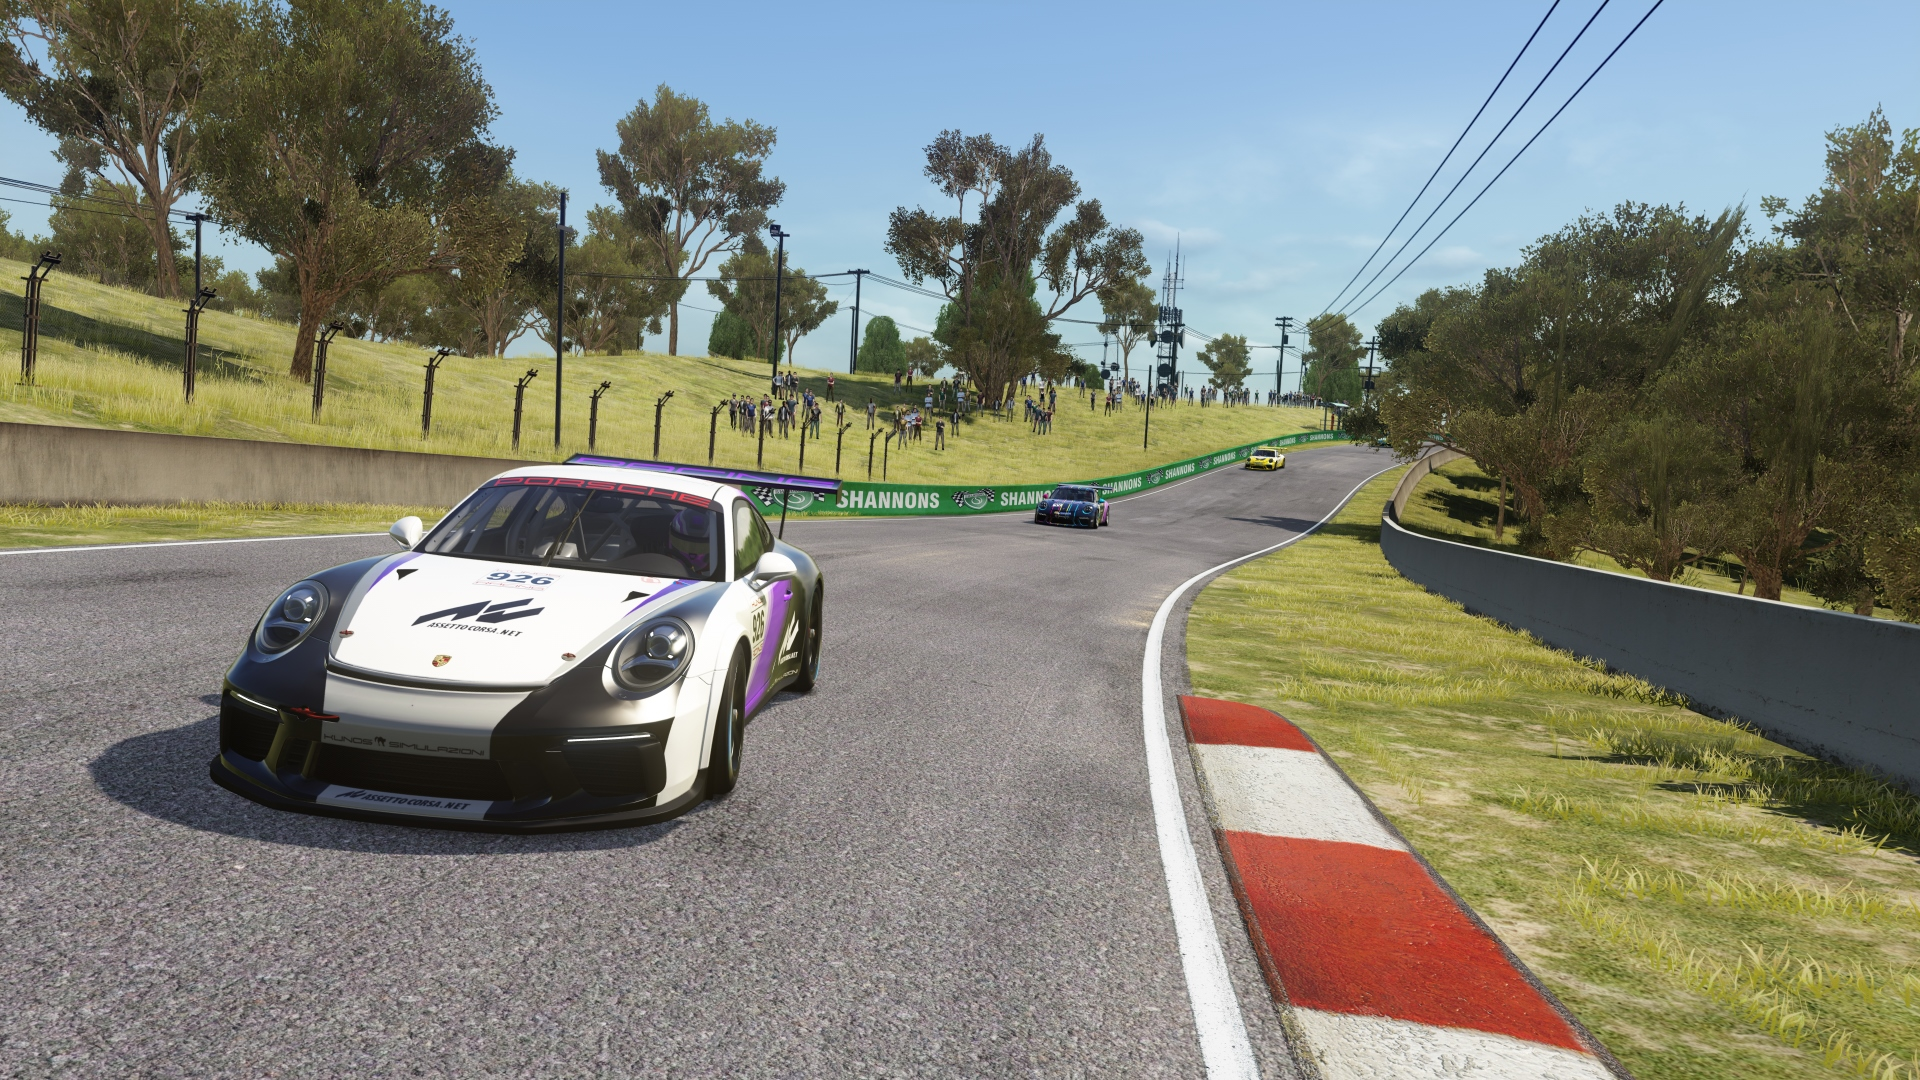 Screenshot_ks_porsche_911_gt3_cup_2017_bathurst_fm7_30-9-119-12-29-16.jpg